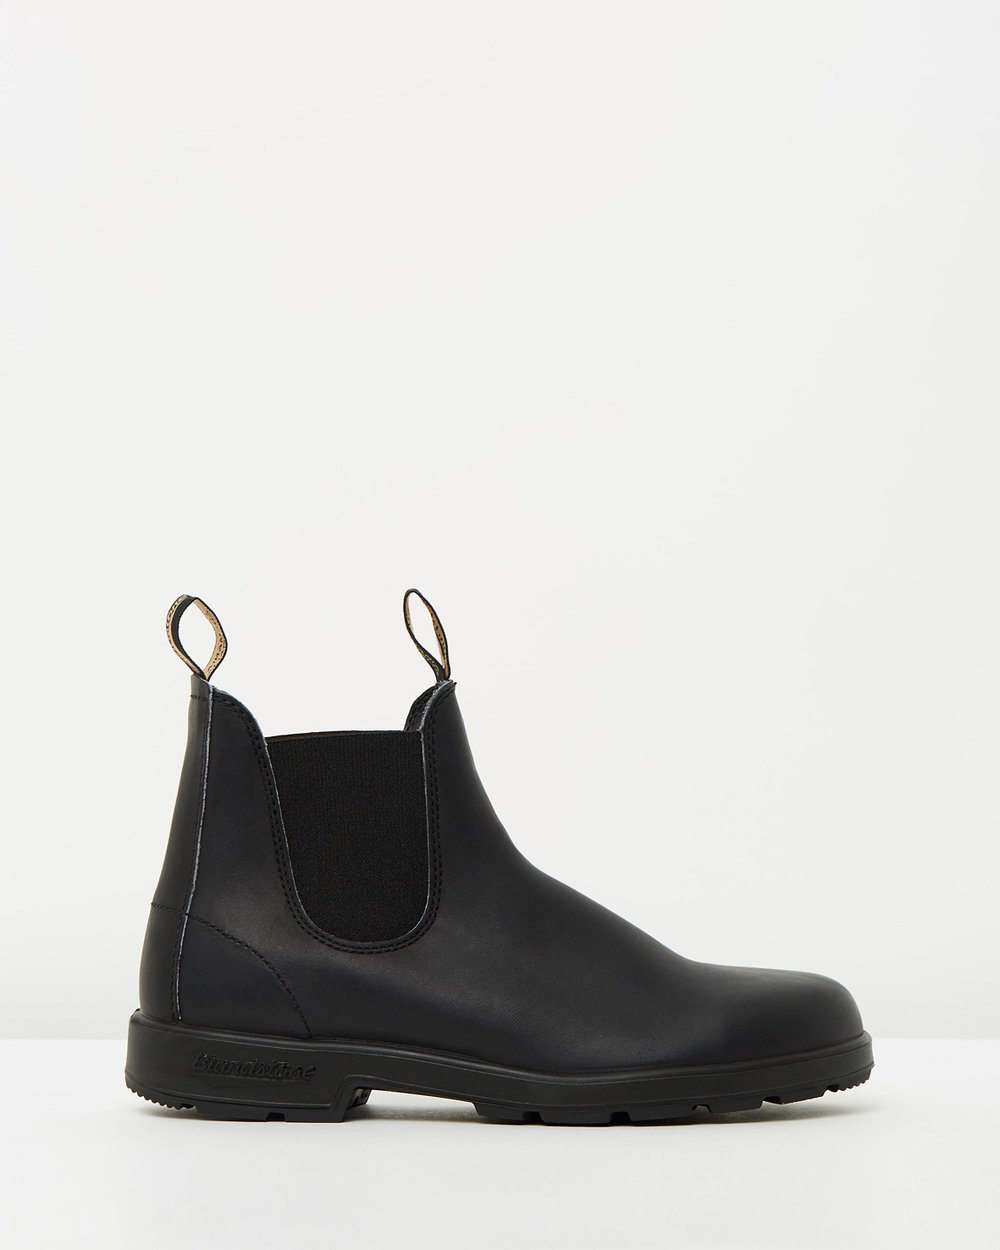 b493f669414 Boots   Buy Womens Boots Online Australia - THE ICONIC